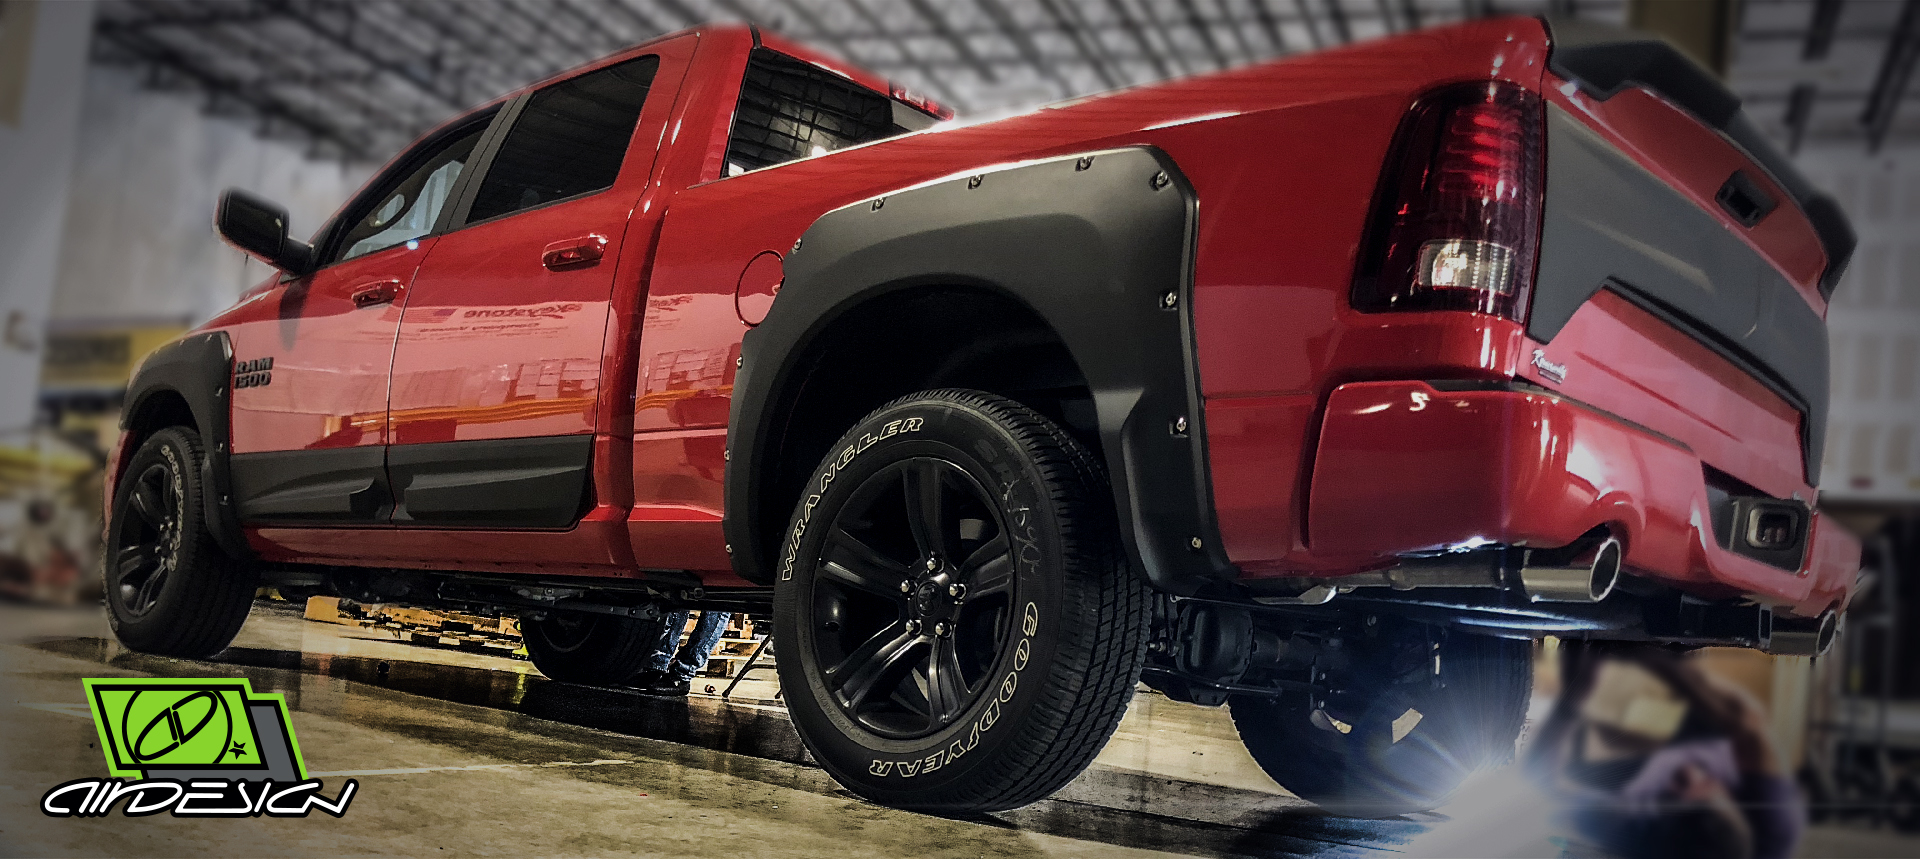 Air Design Dodge Ram Off Road Full Body Kit